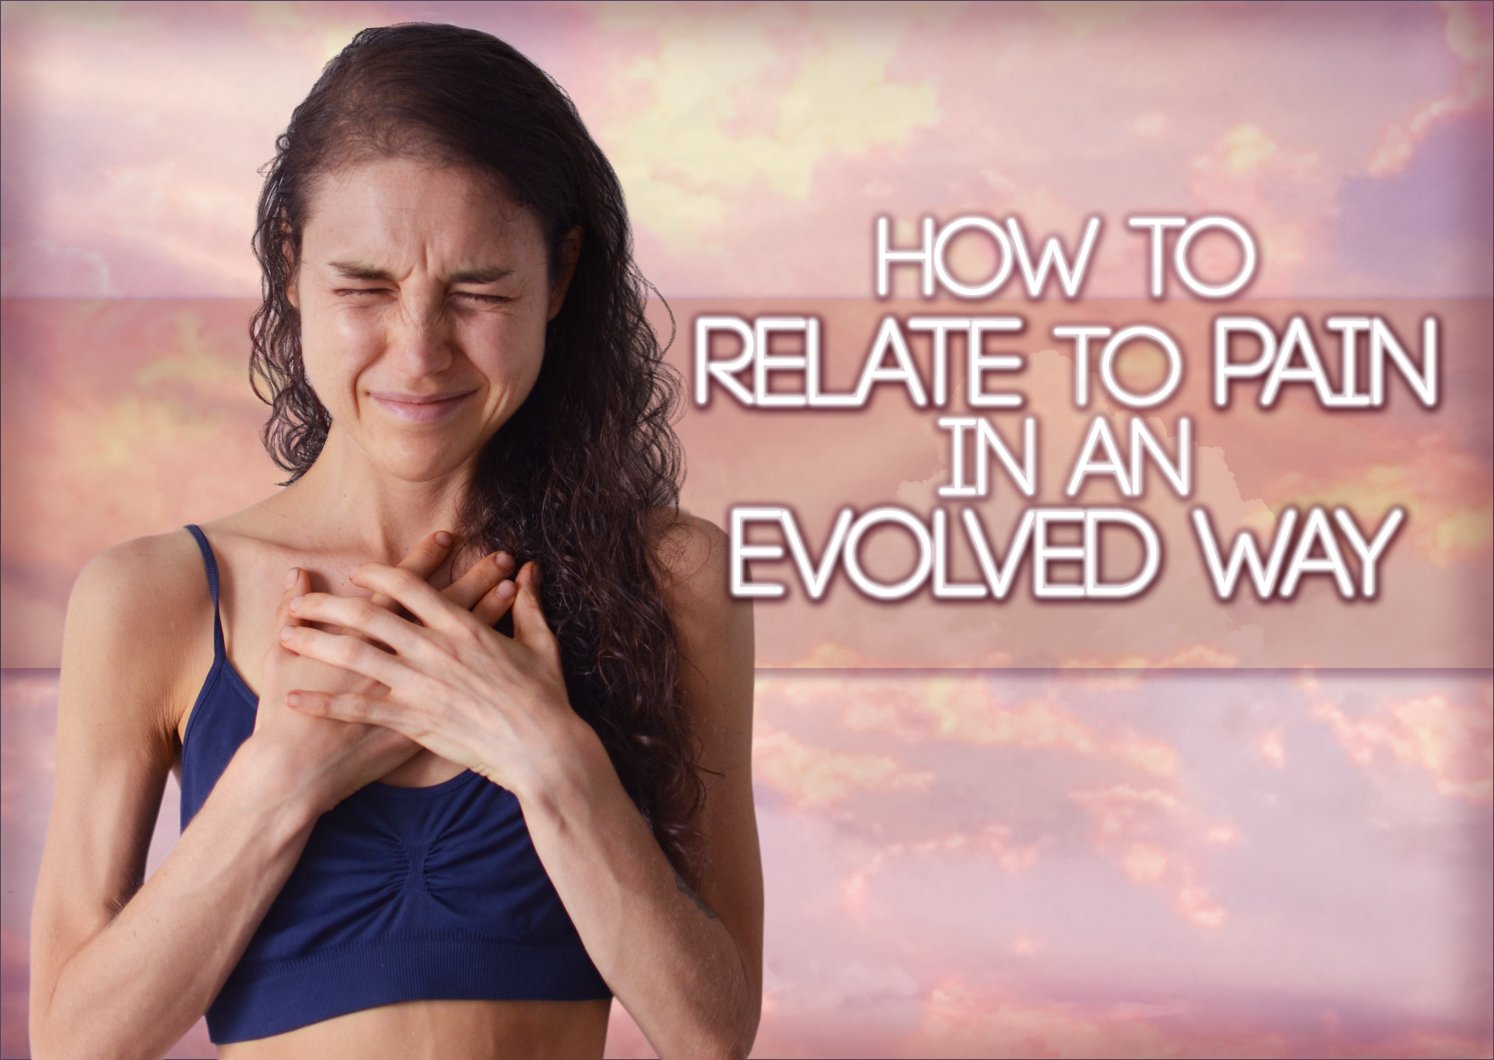 How To Deal With Pain In An Evolved Way: